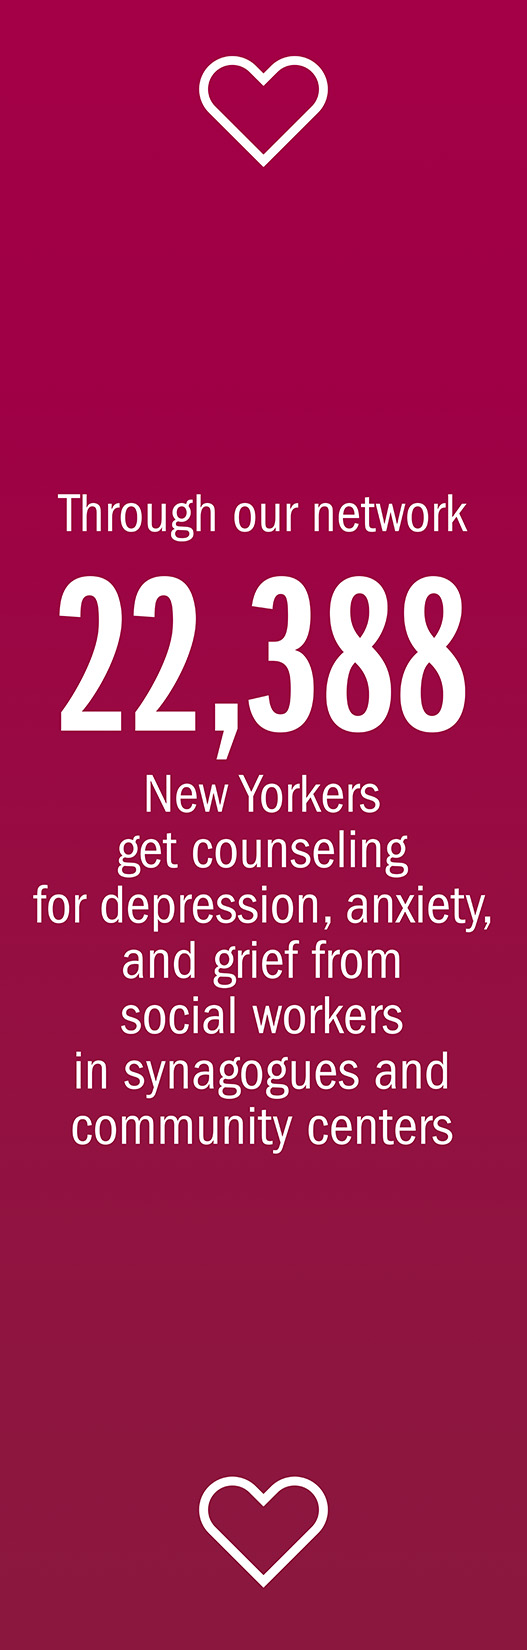 UJA Health and Well Being Banner rev06 Side B.jpg